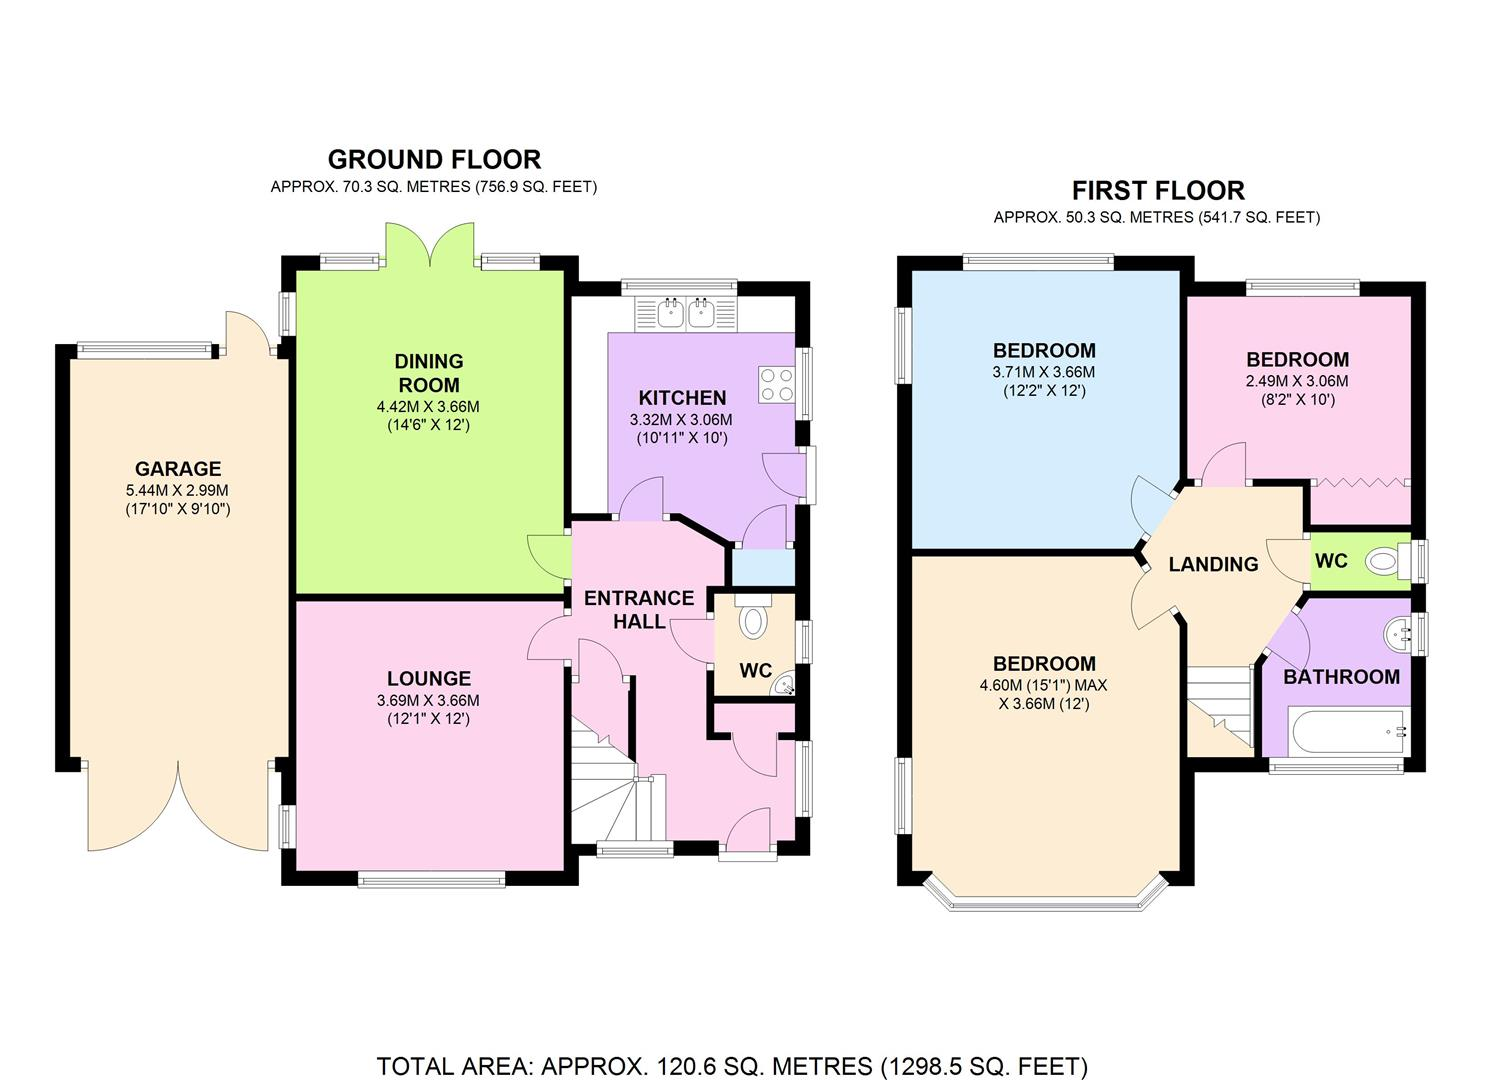 4 Oak Hill Epsom floor plan.jpg